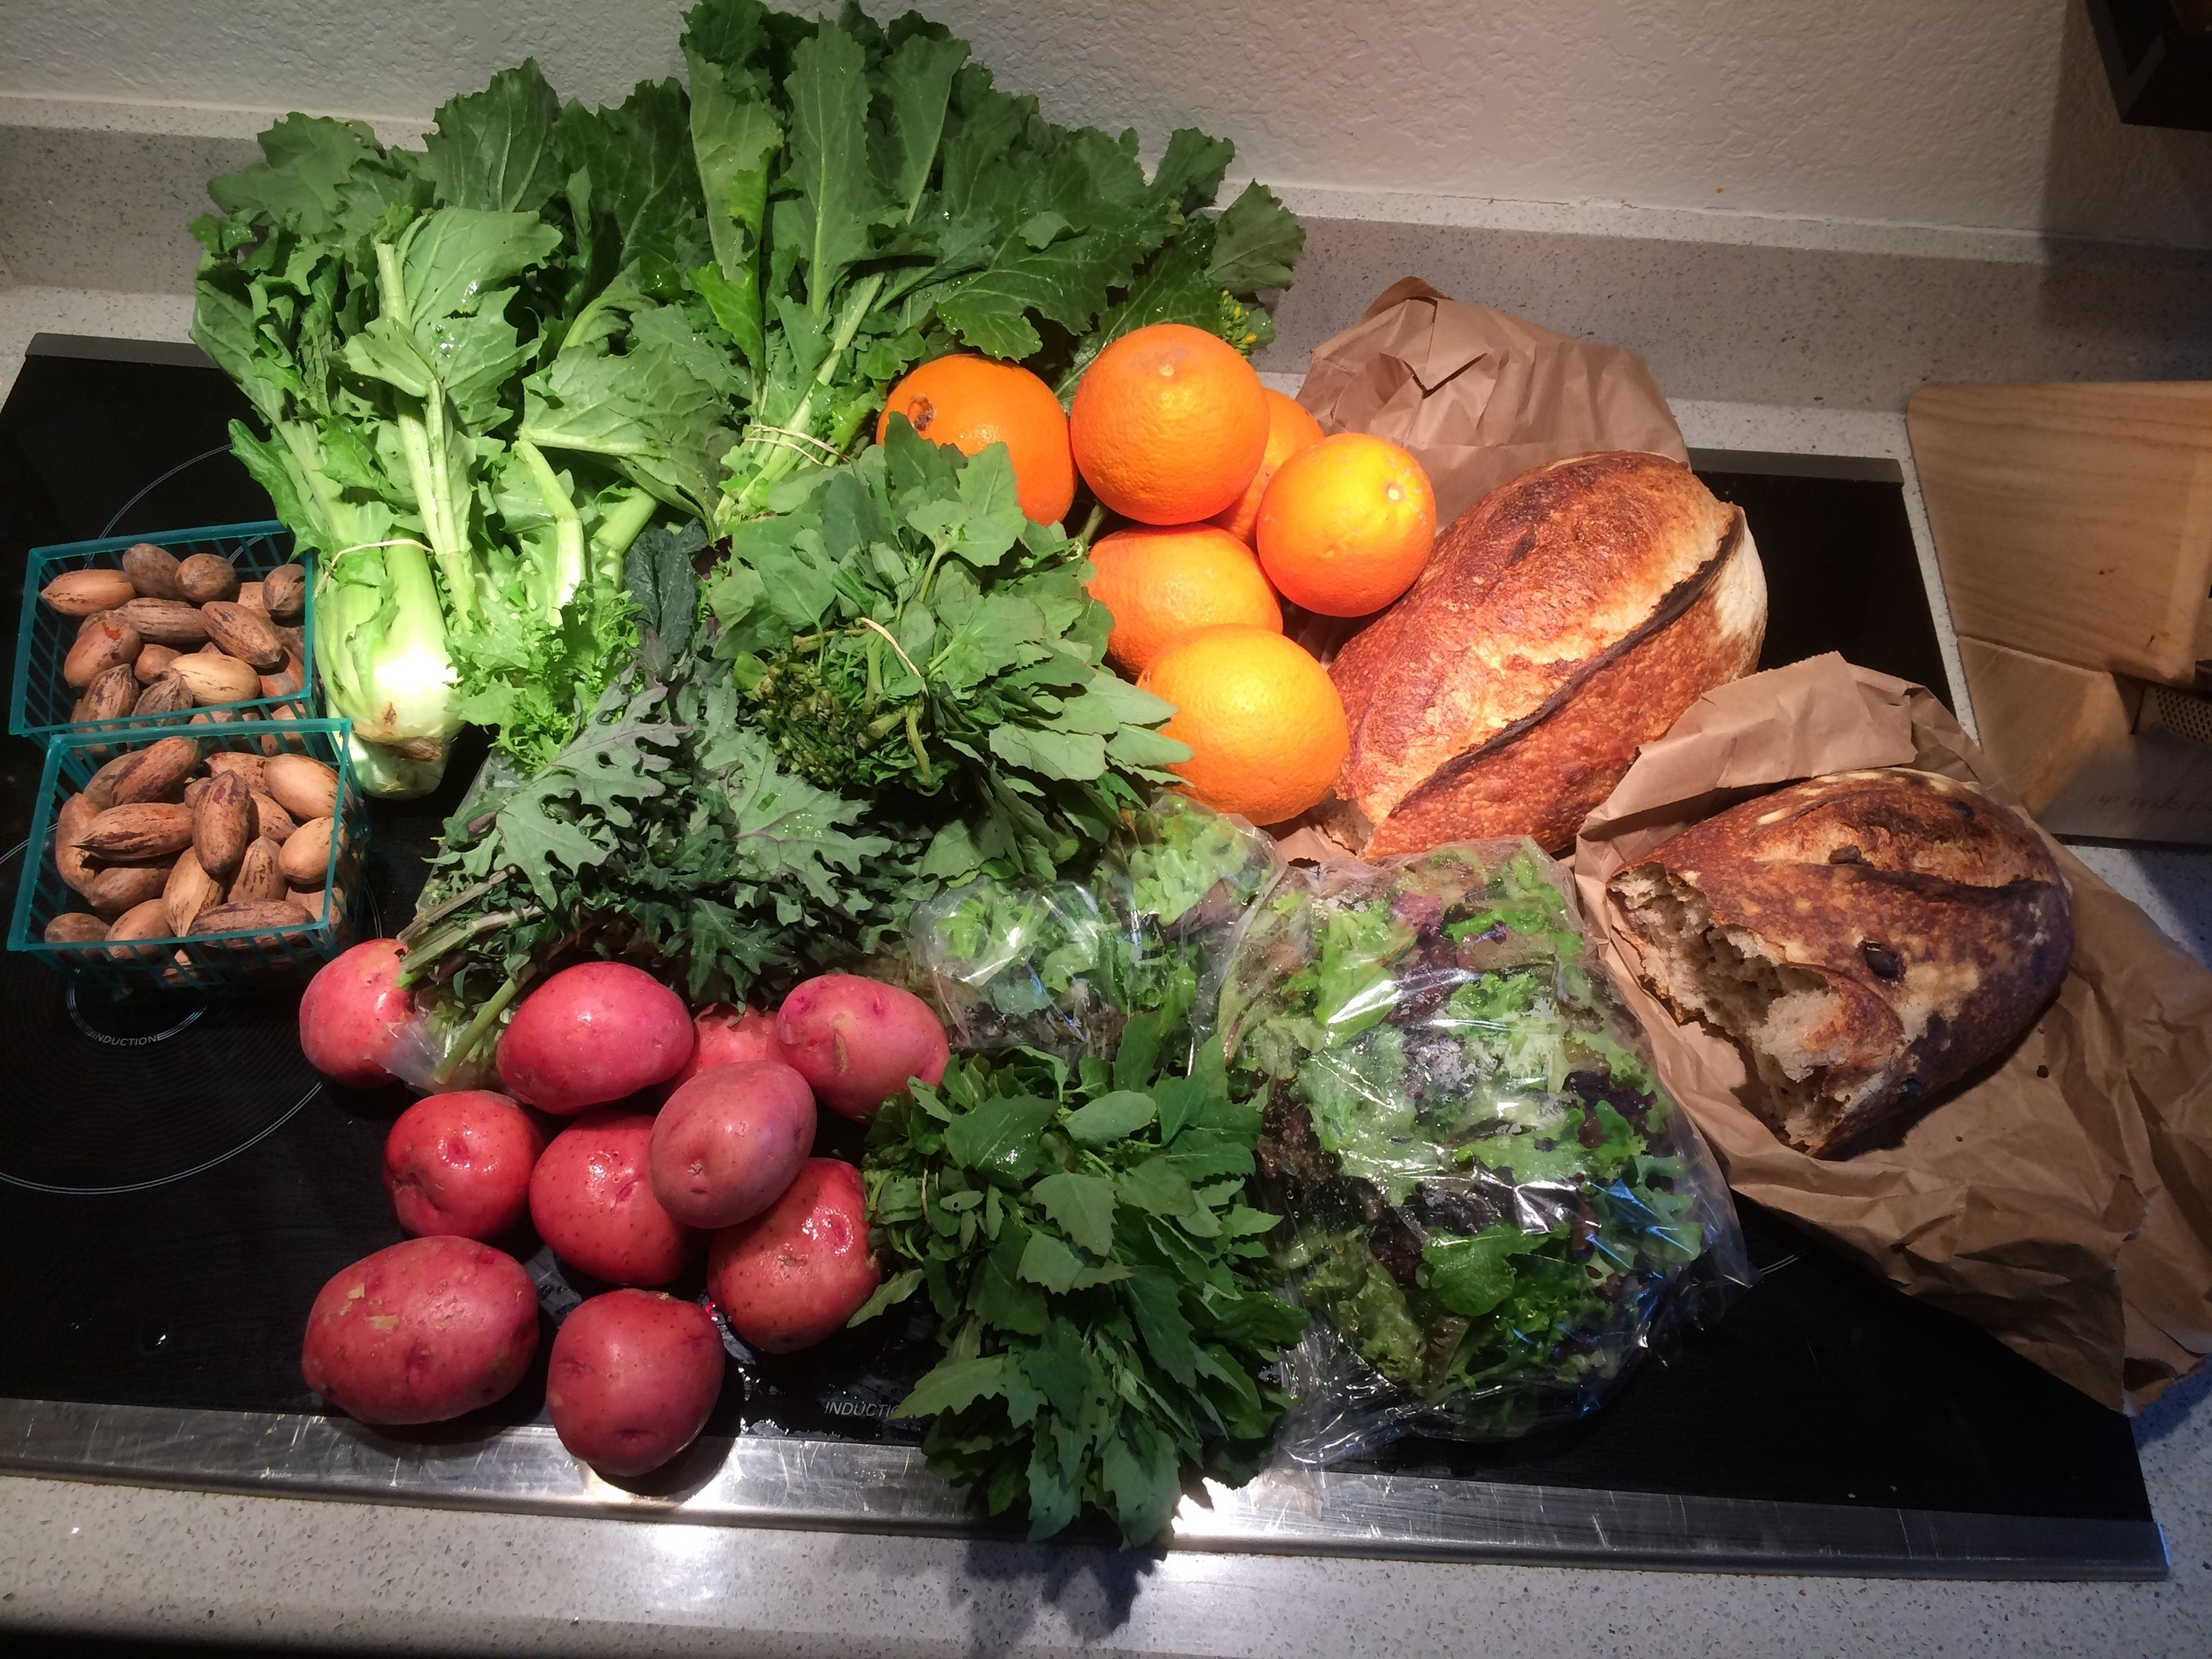 One of our week's share at the CSA - Tons of greens at this time of year. The Bario Bread, which is a part of our share is also delicious!